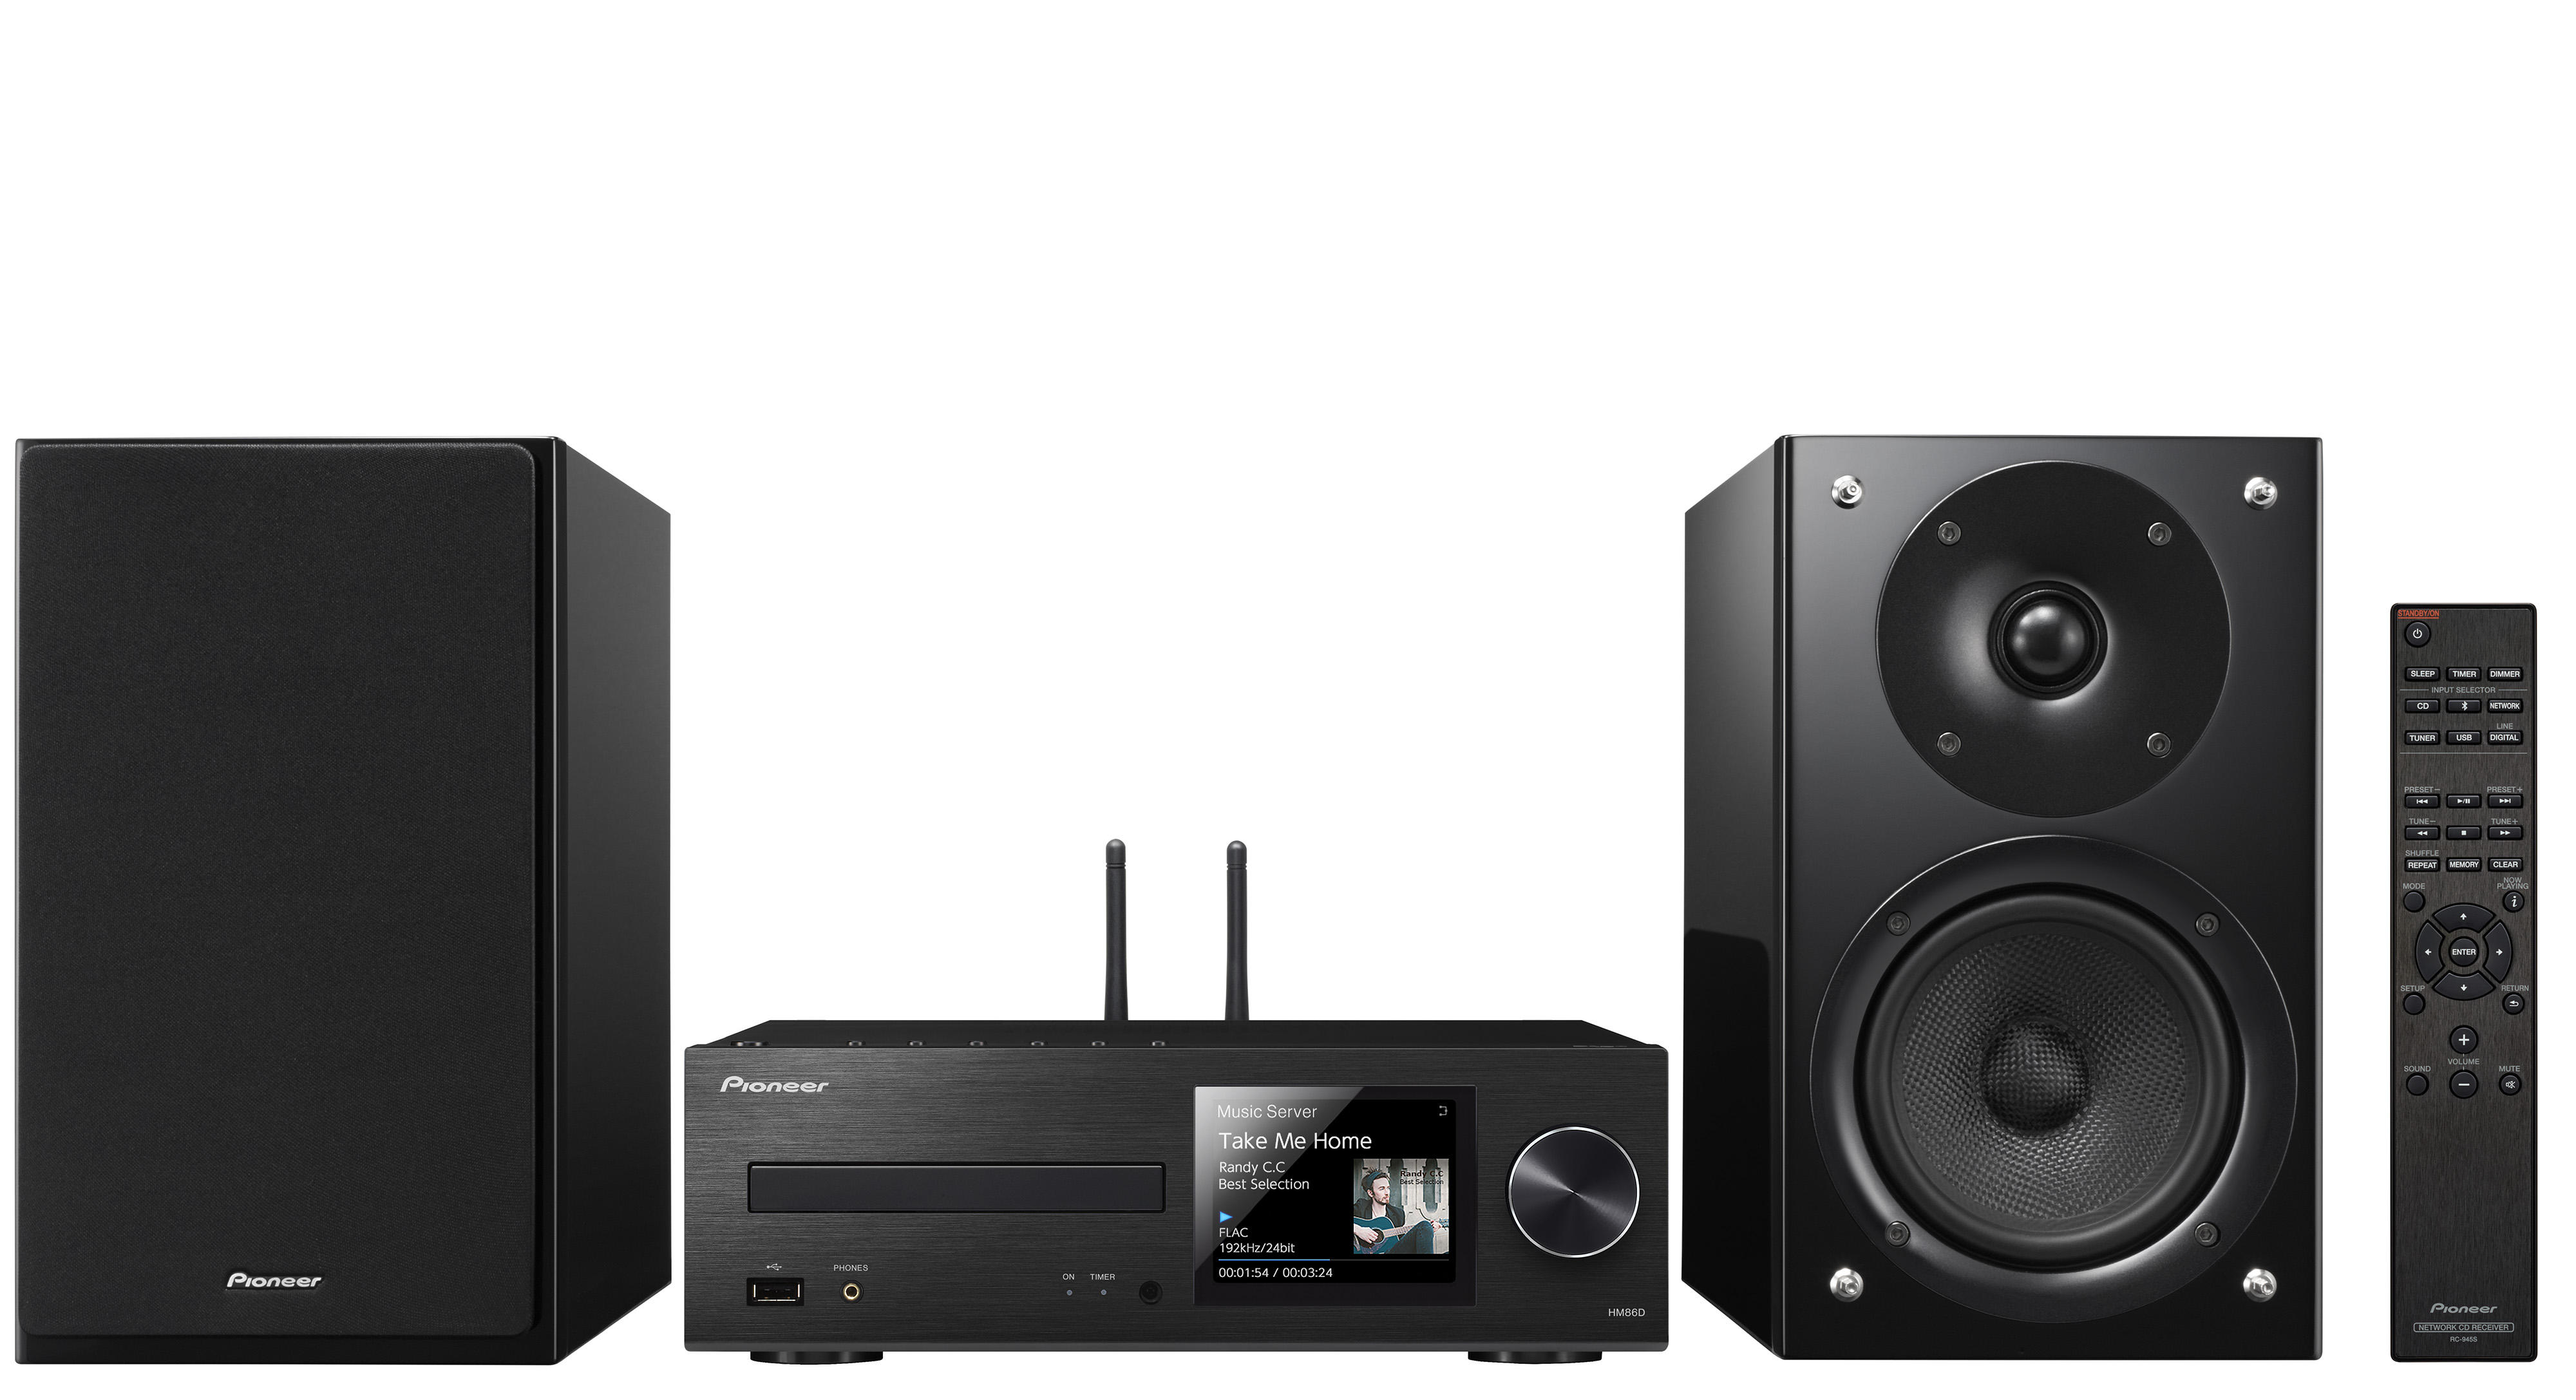 X-HM86D | System Components | Products | Pioneer Home Audio Visual